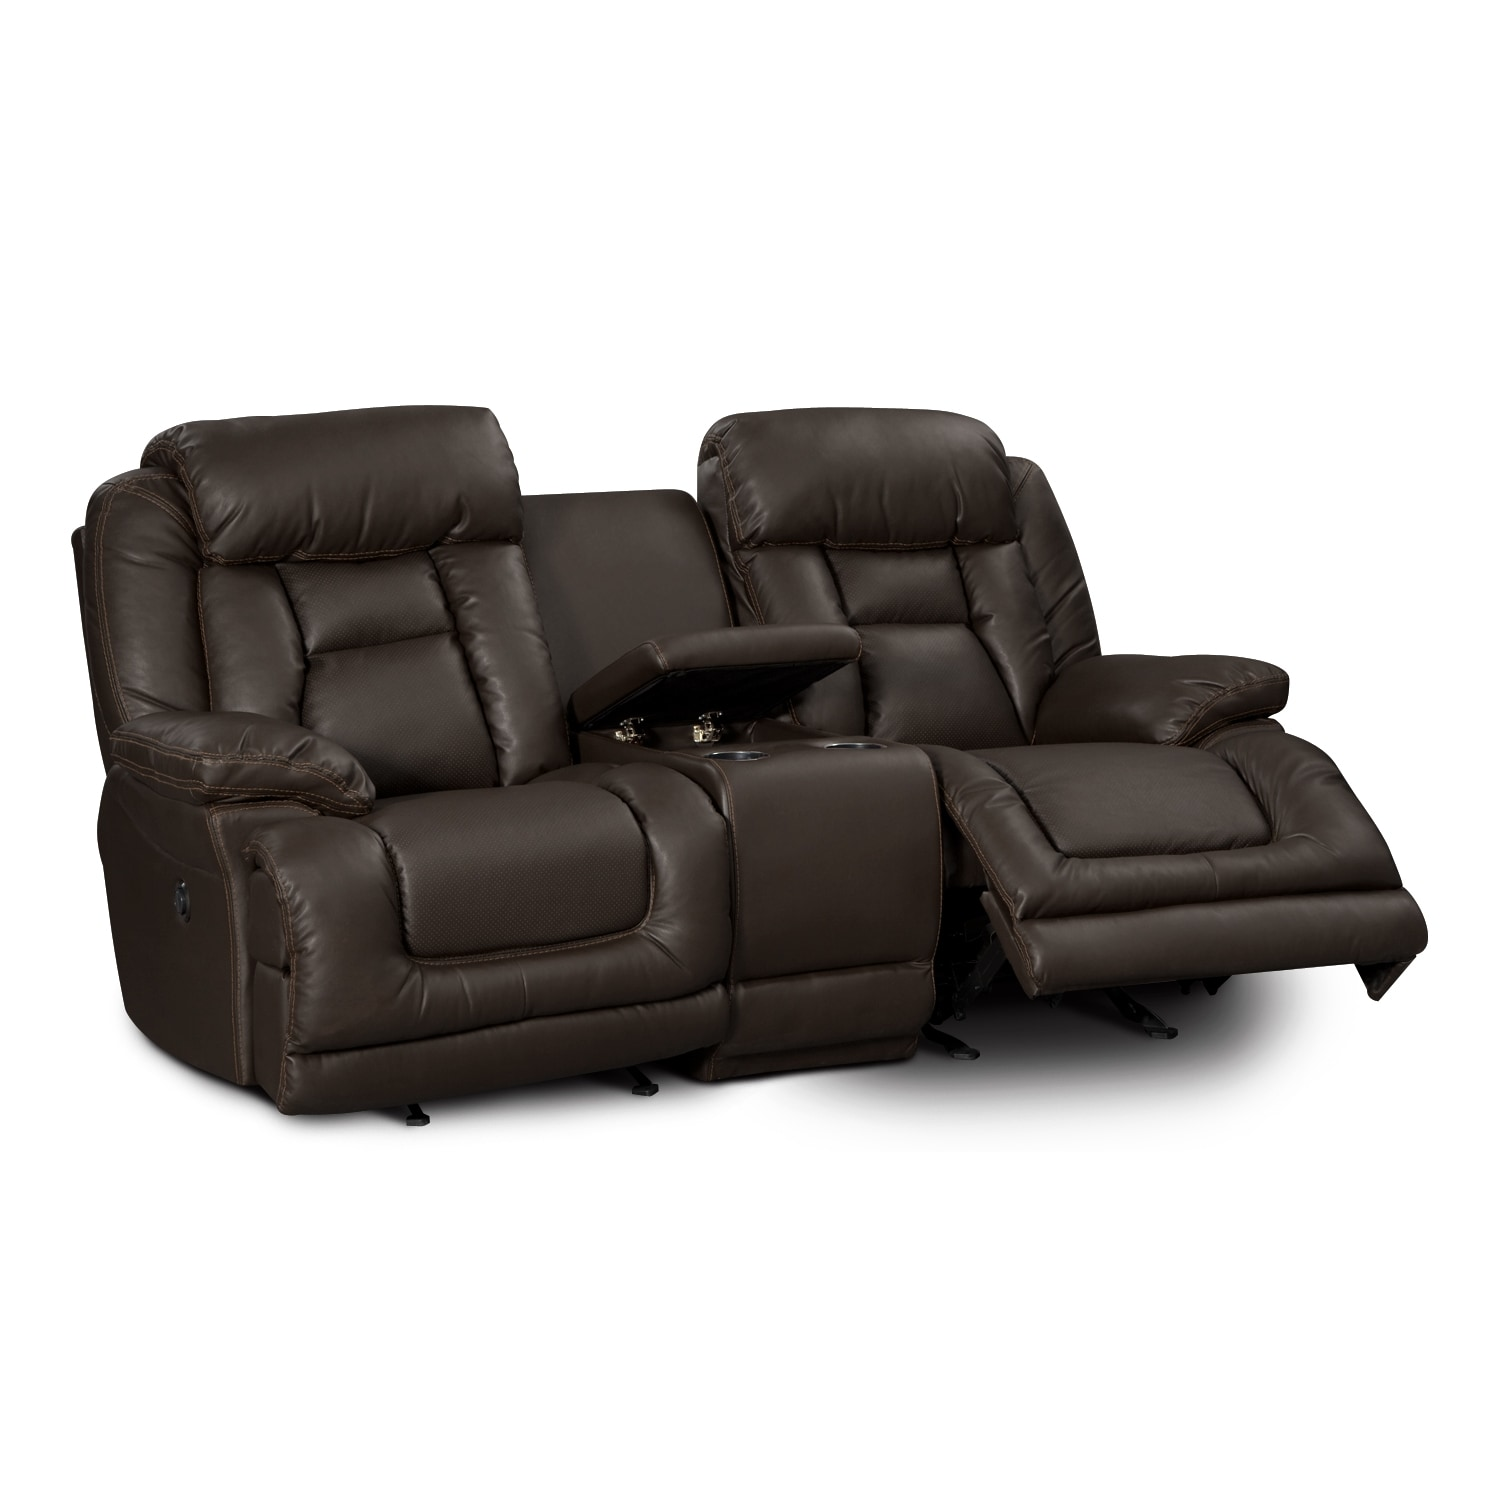 Furnishings for every room online and store furniture Power reclining sofas and loveseats